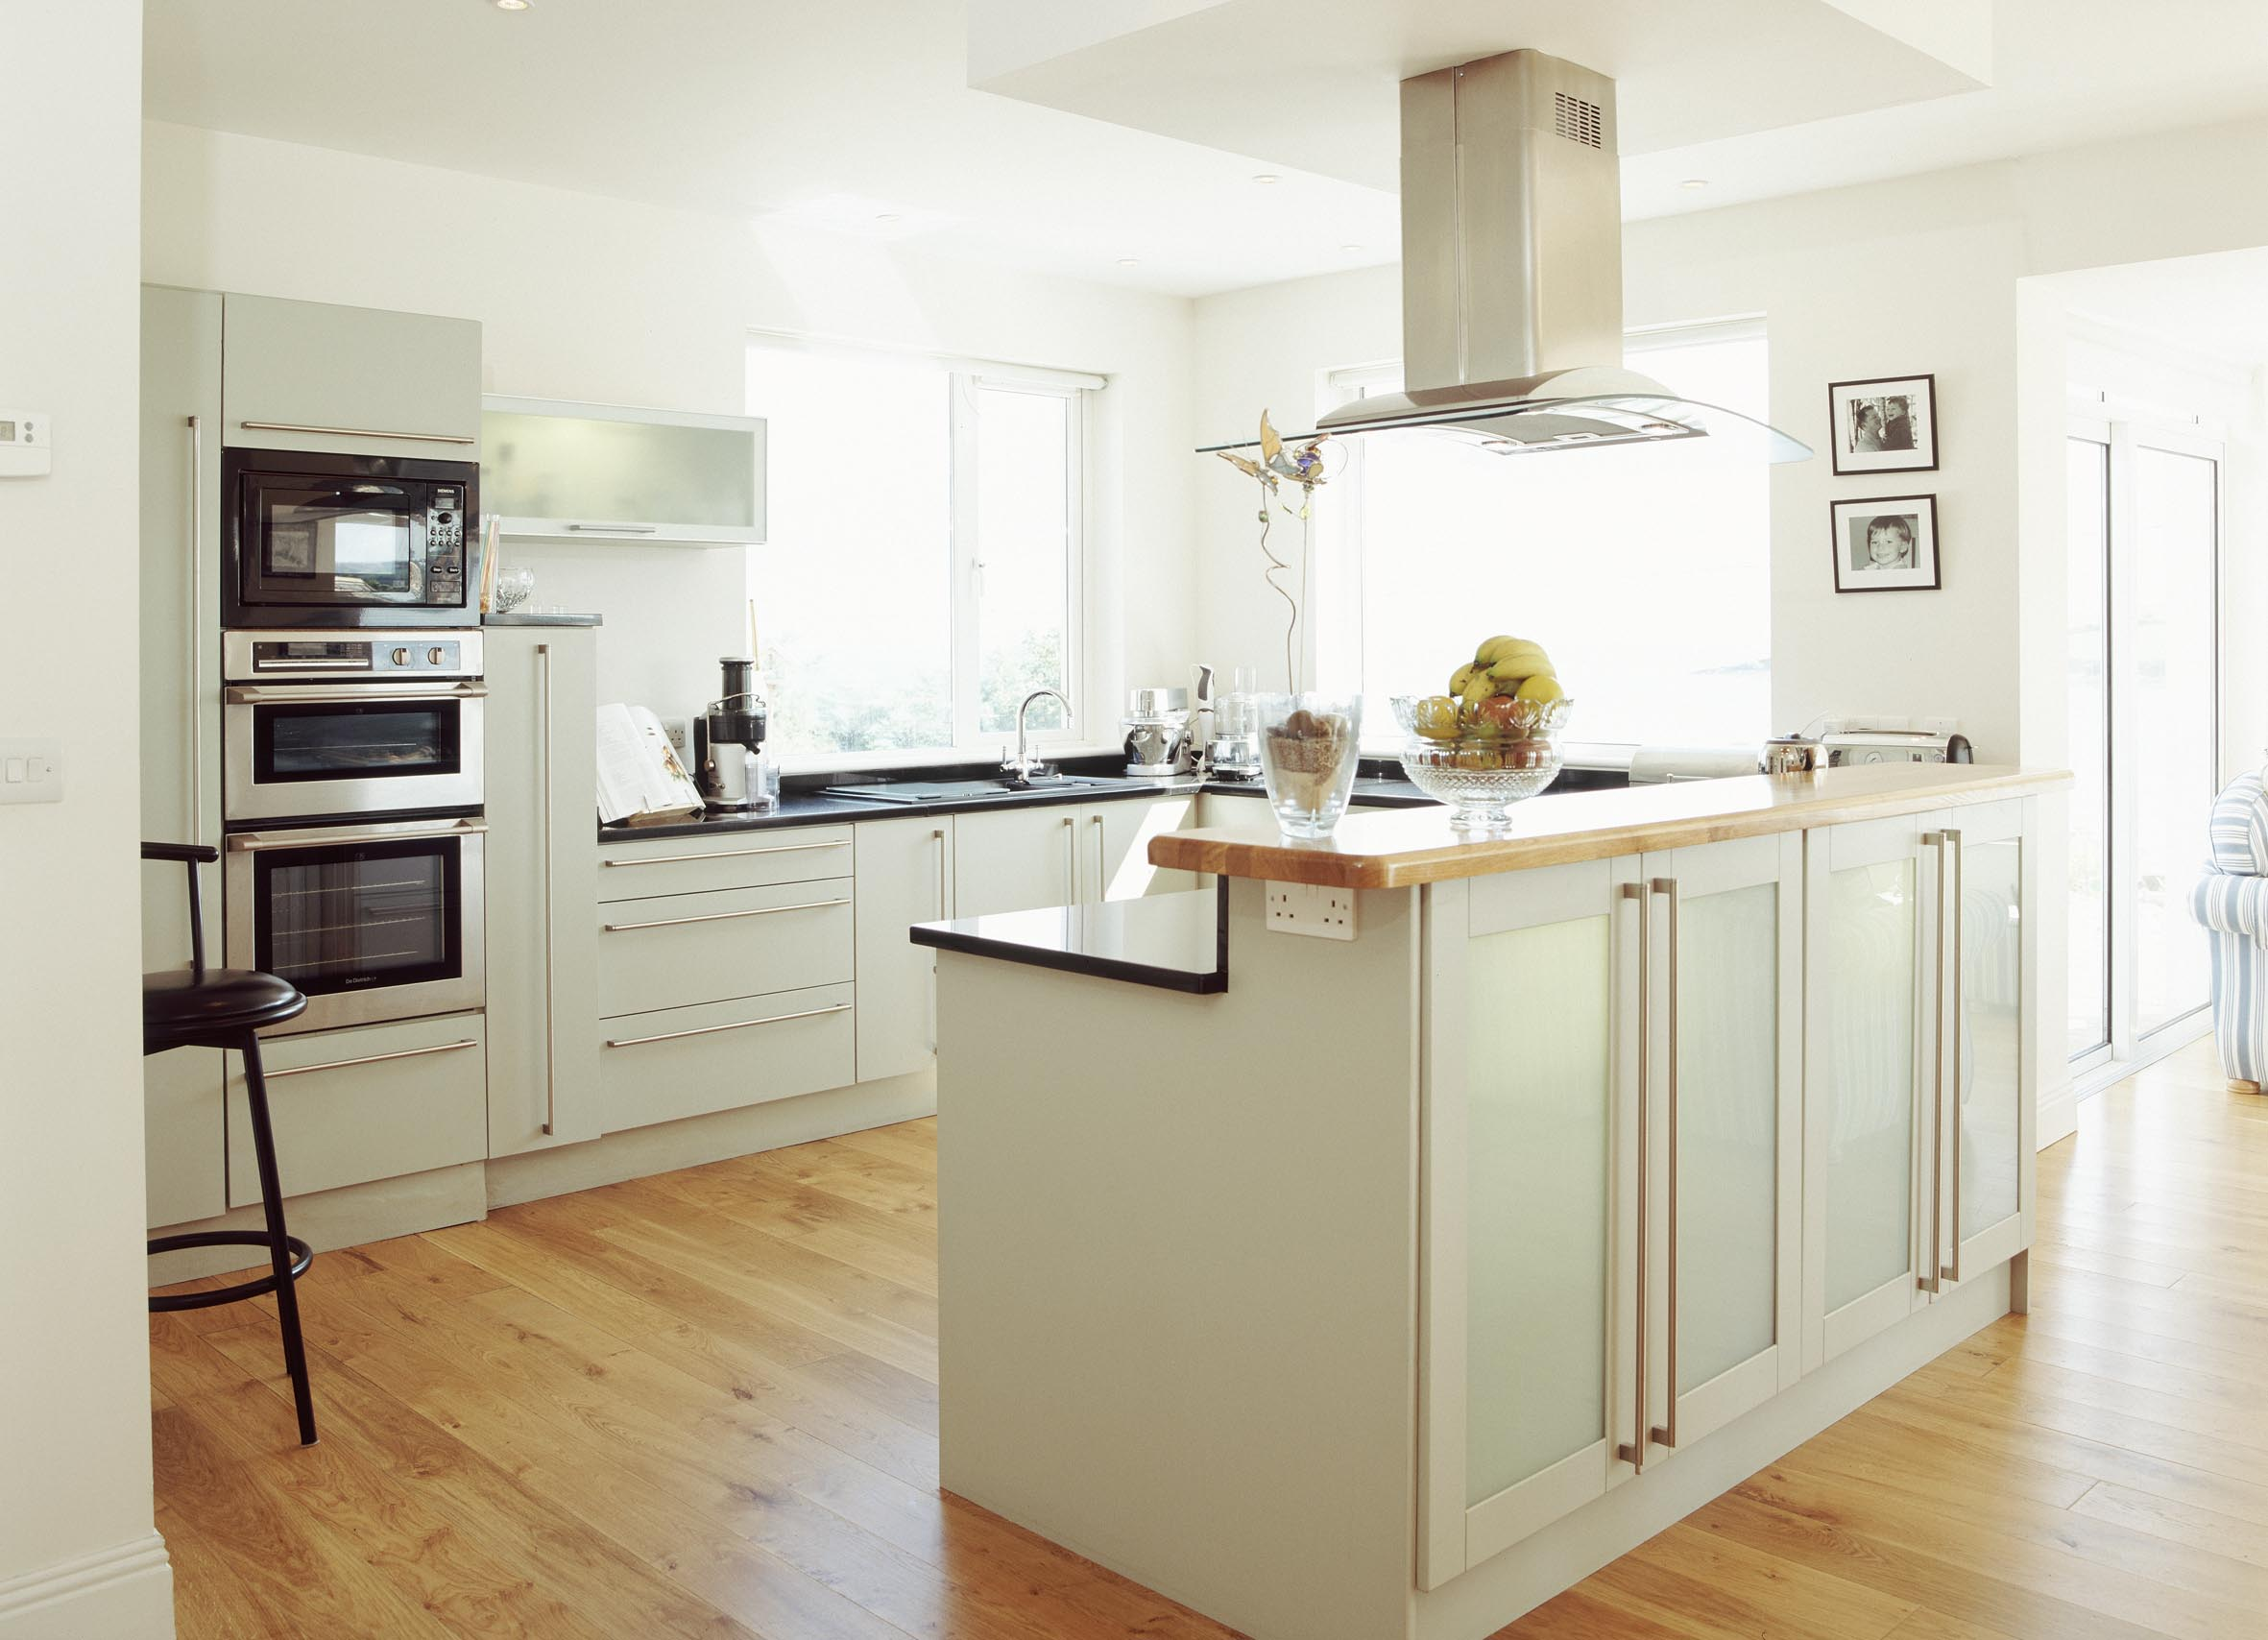 Hartigan Kitchens and Bedrooms Cork: Kitchen Cork Feature - Polished ...